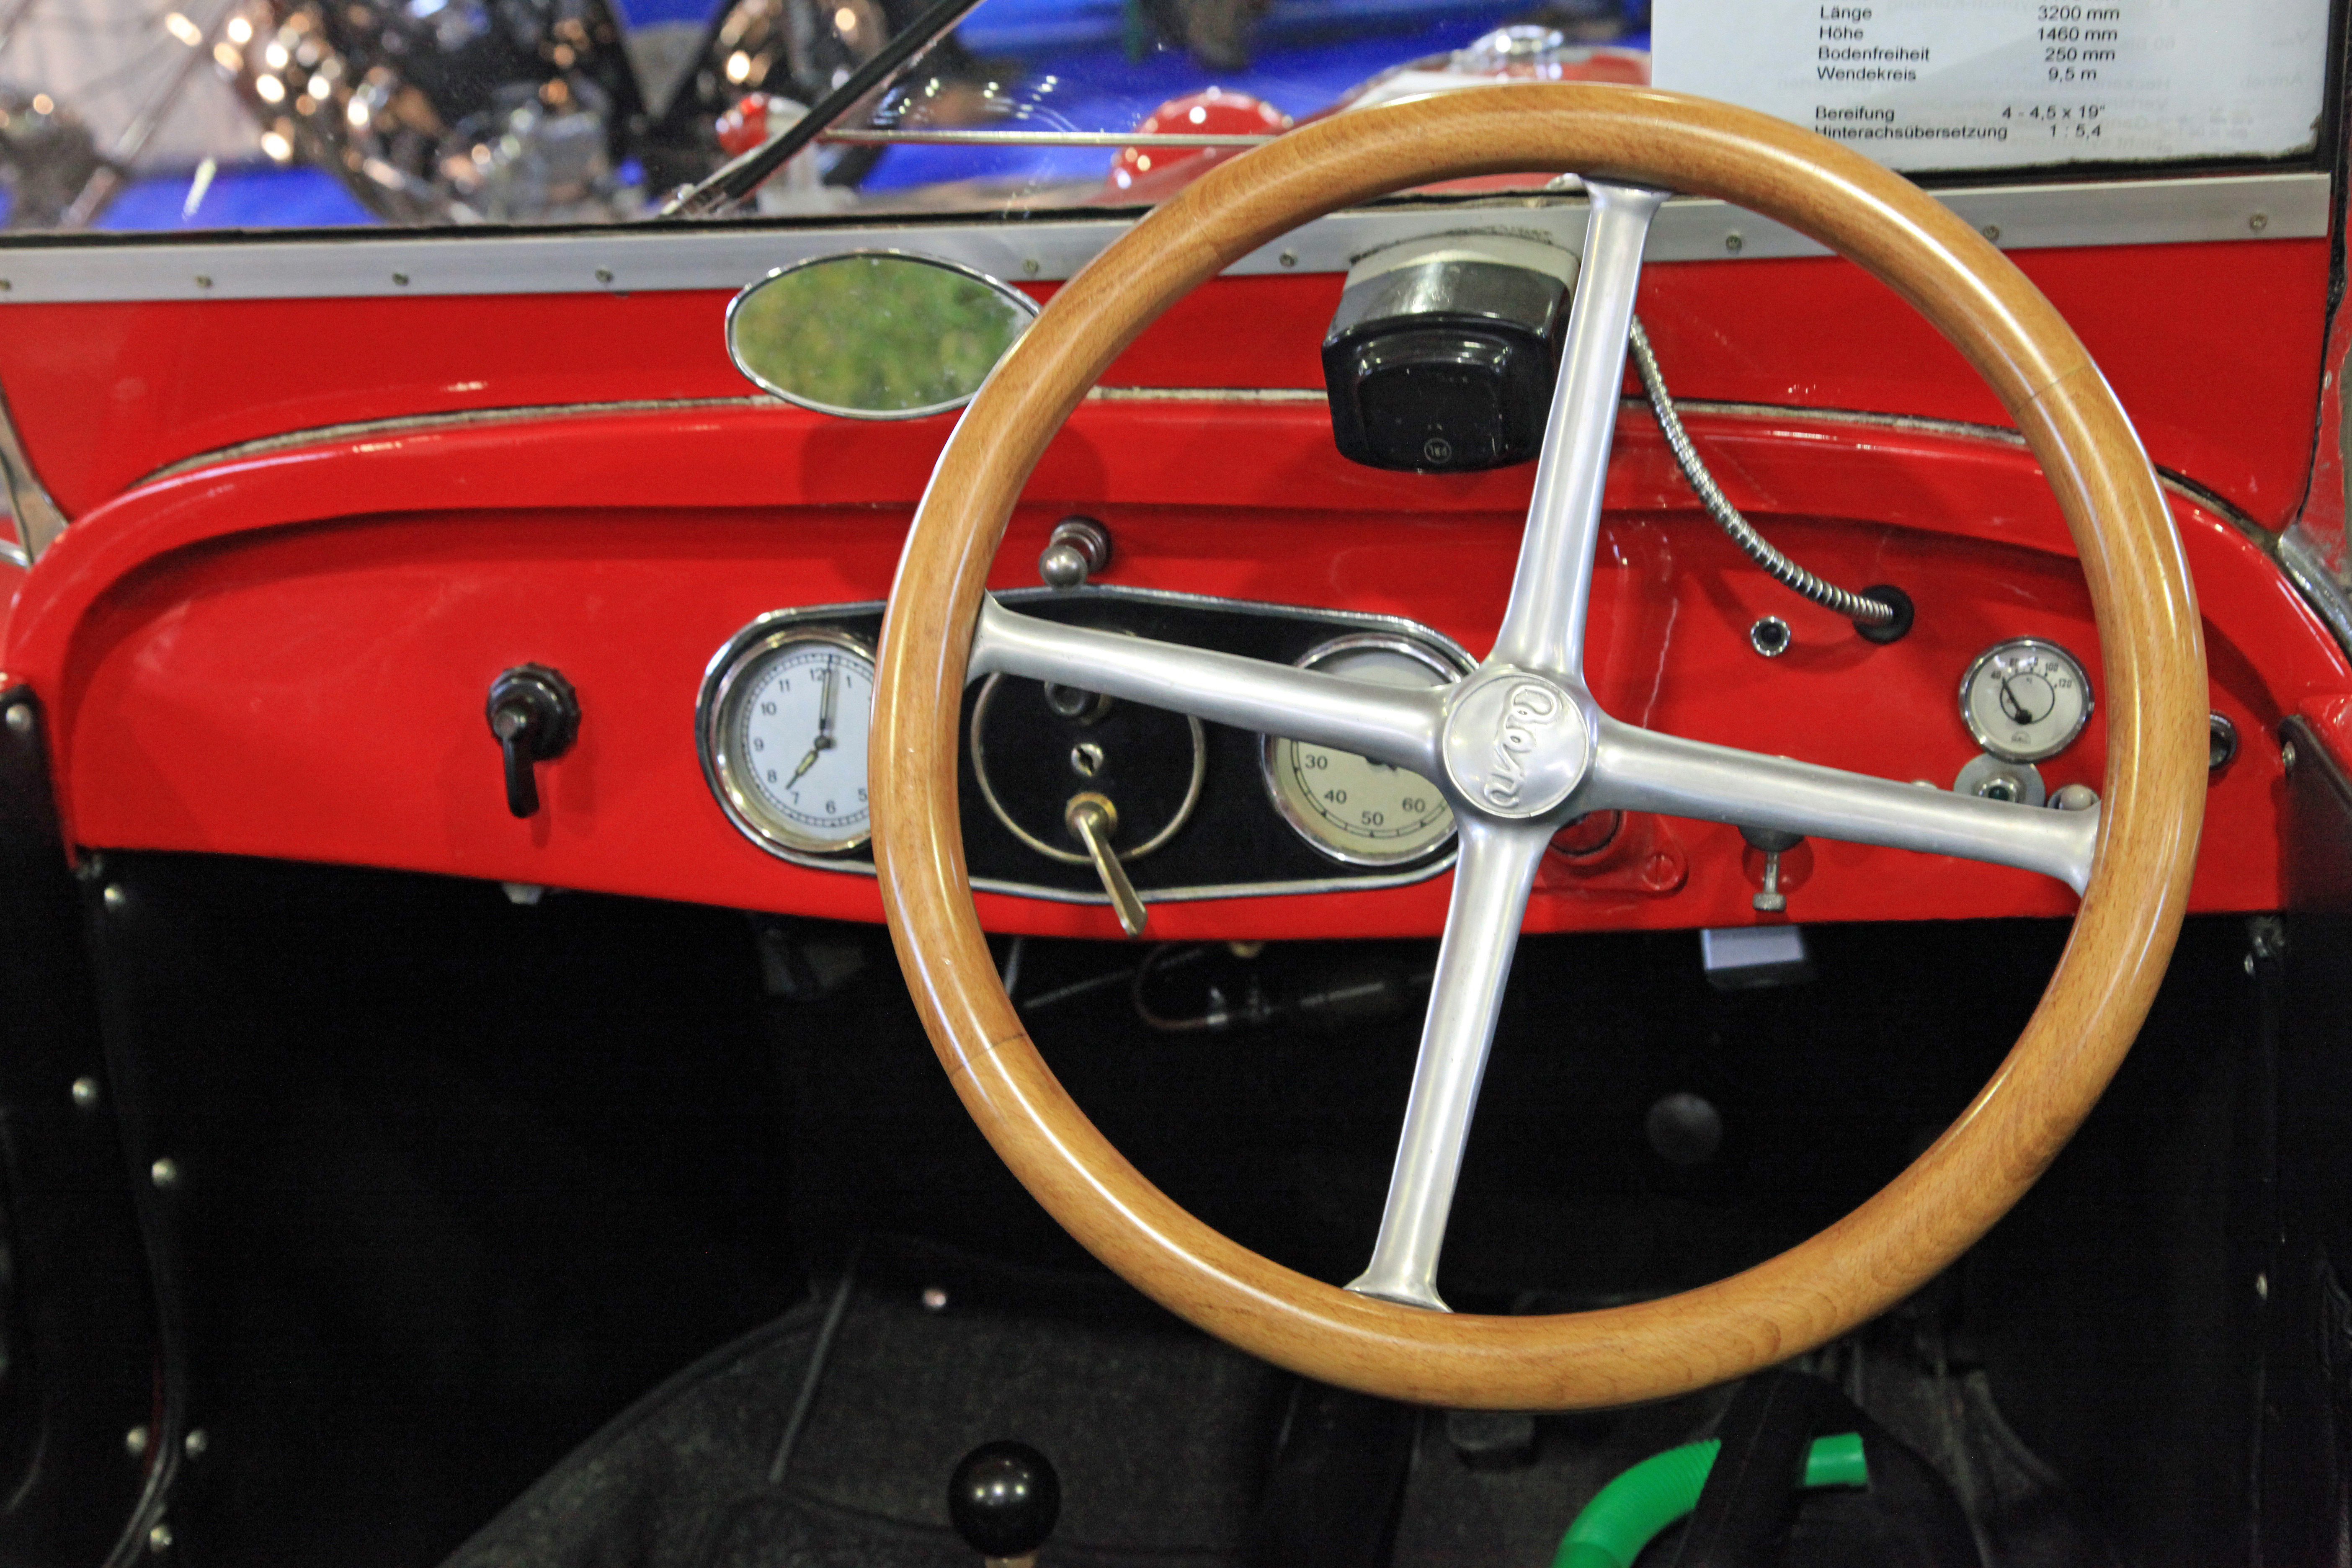 Vintage Car Steering Wheel image - Free stock photo - Public Domain ...